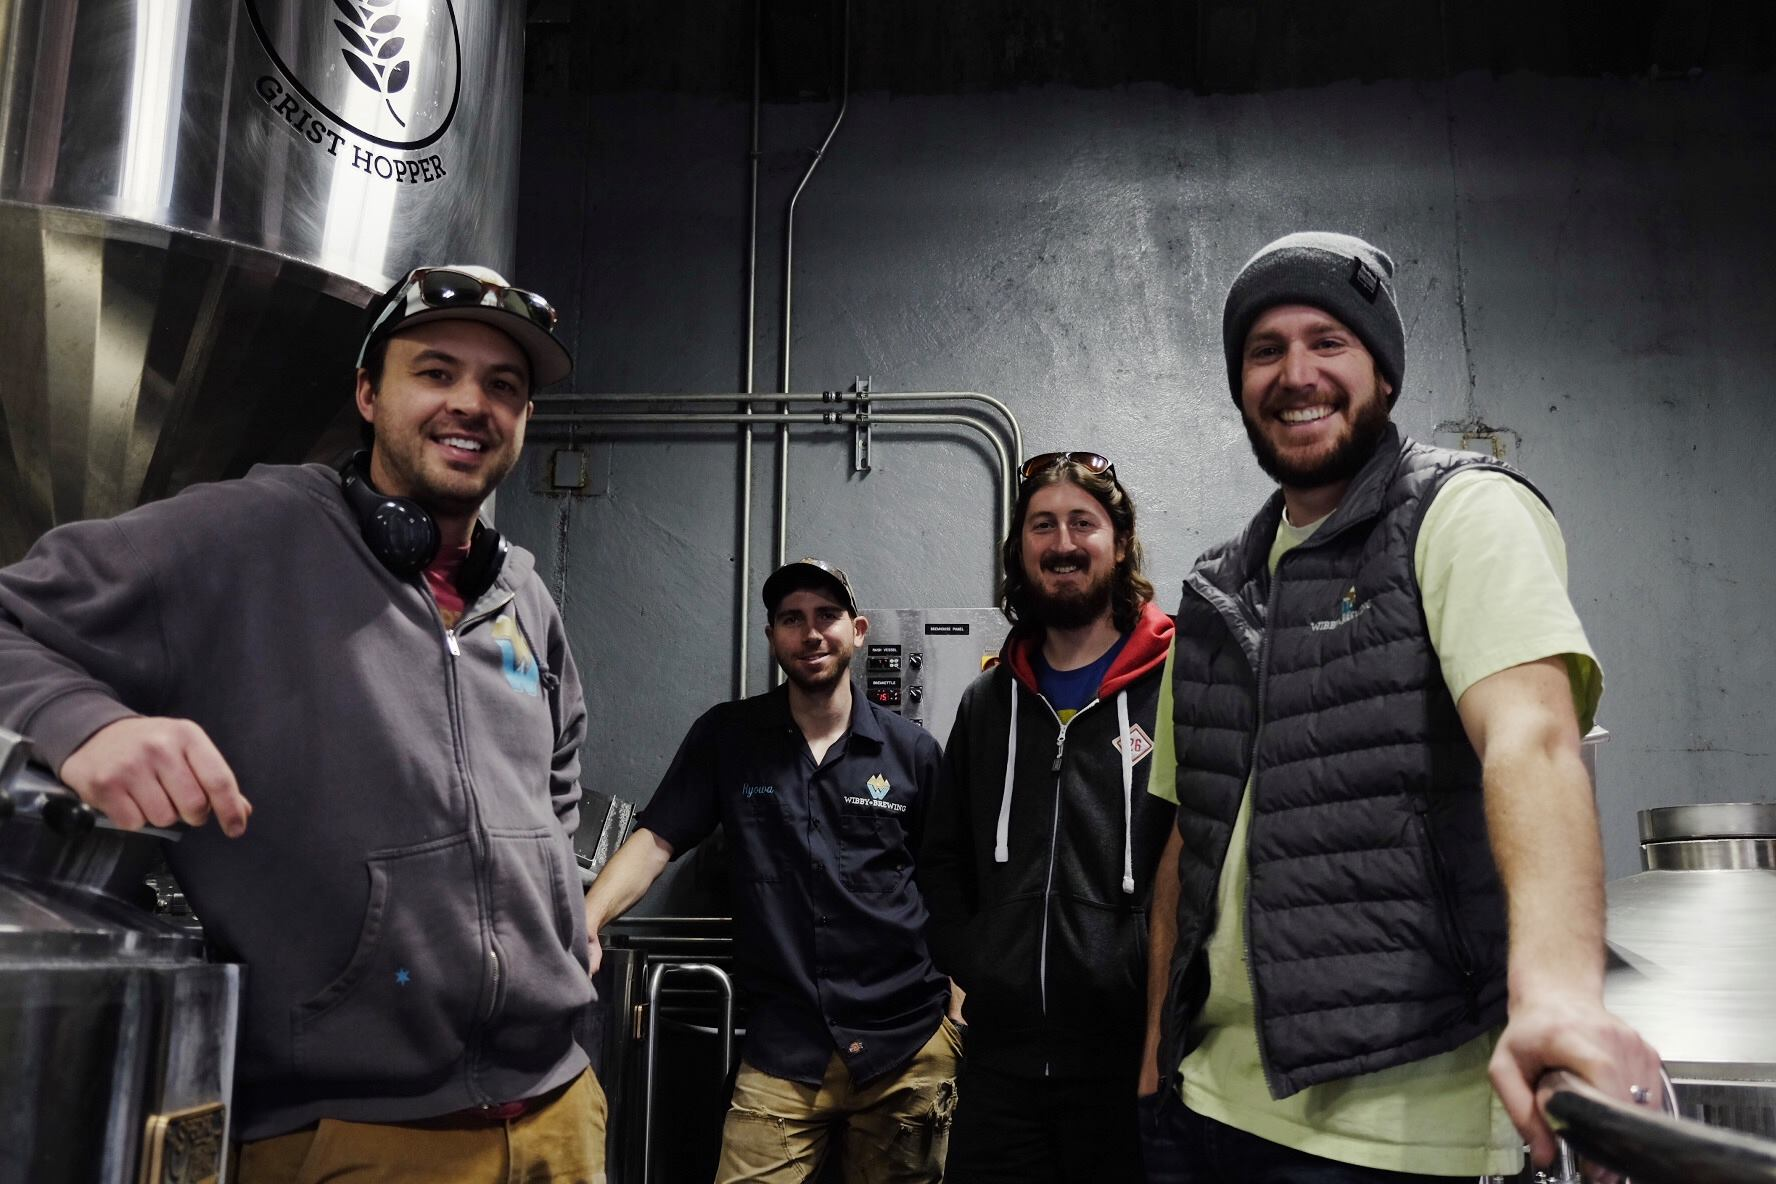 Station 26 at Wibby Brewing, photo courtesy The Brewtography Project